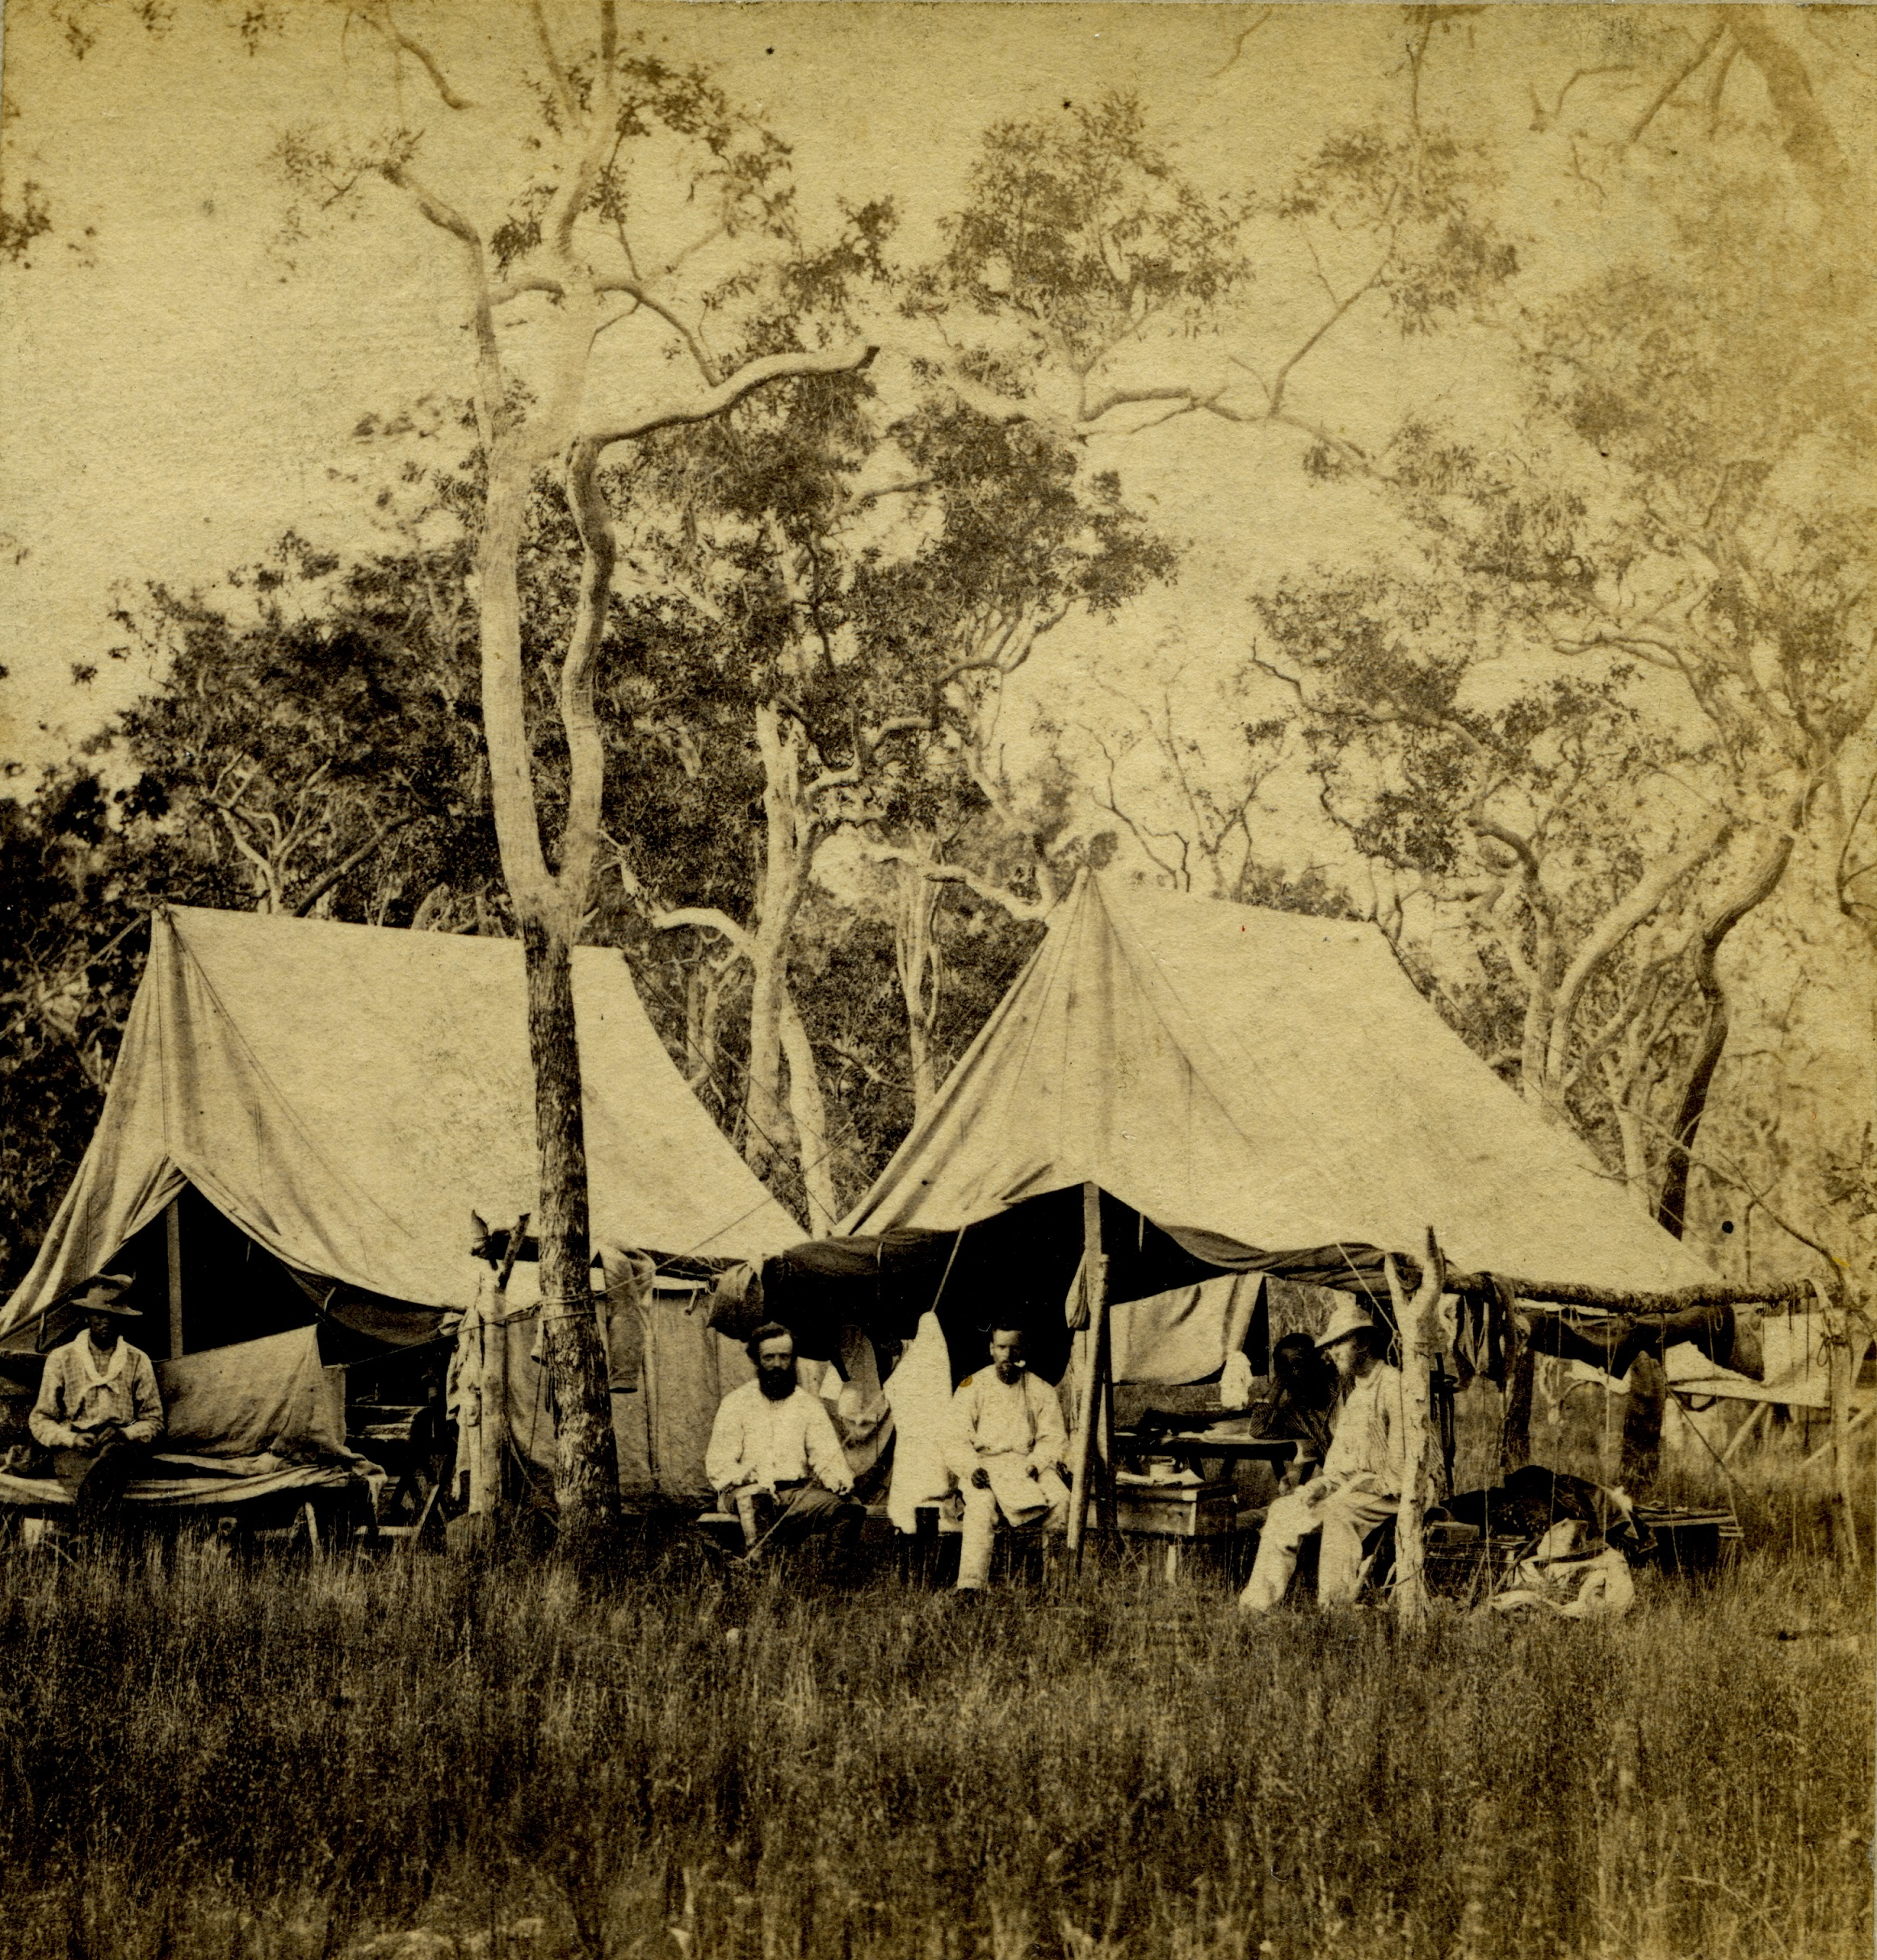 Mr. McLachlan's camp at the three wells, 1869